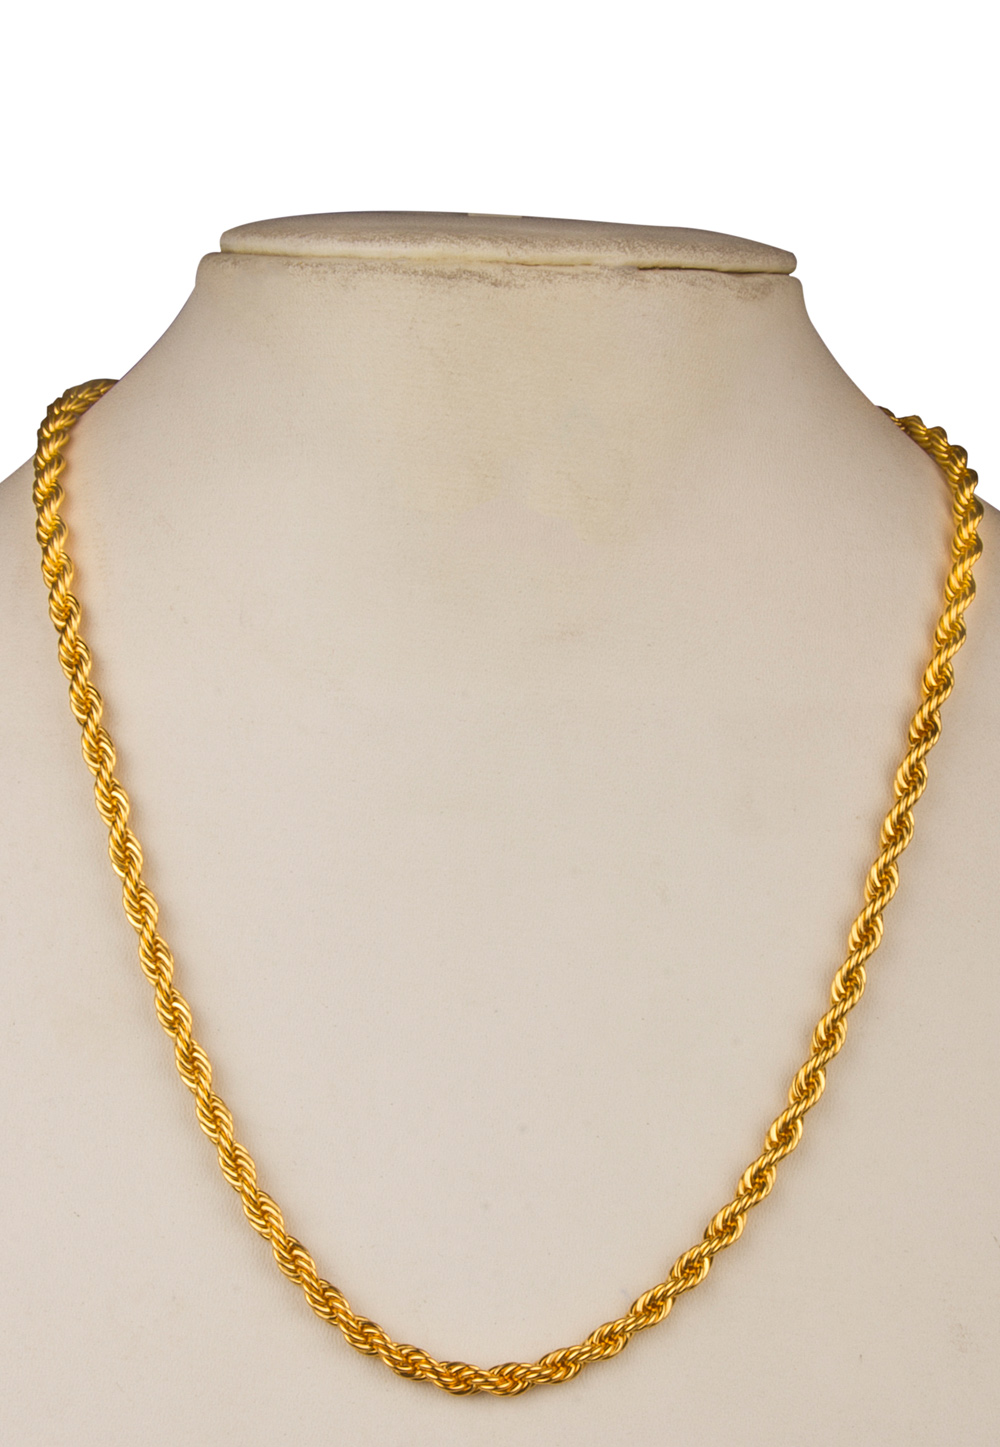 Golden Gold Plated Chain 171875